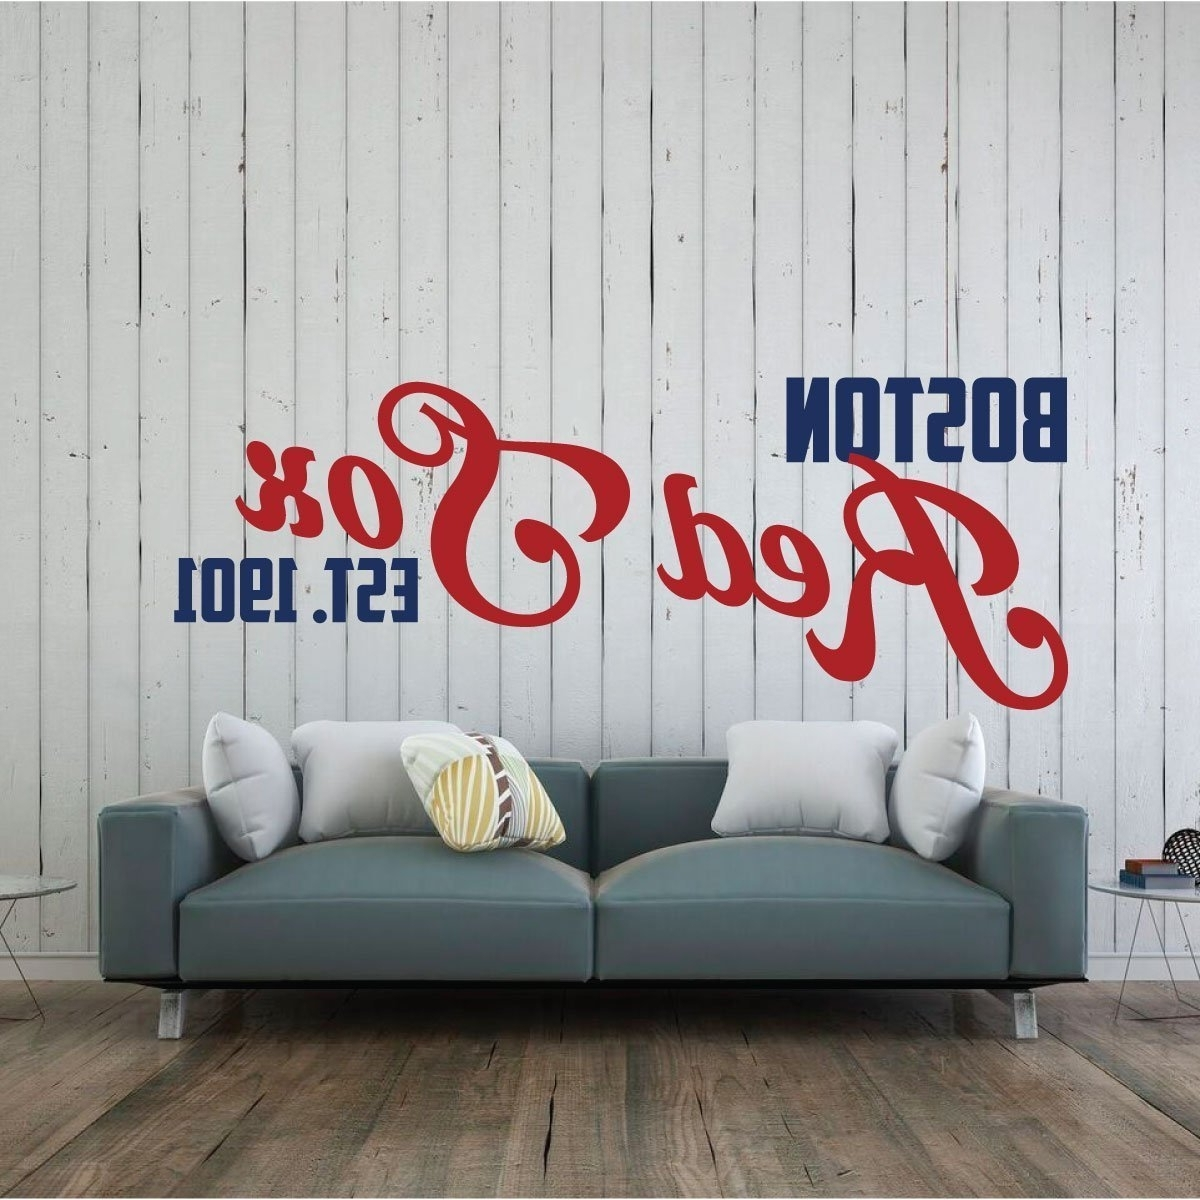 2017 Red Sox Wall Decal – Boston Baseball Decorations With Red Sox Wall Decals (View 1 of 15)